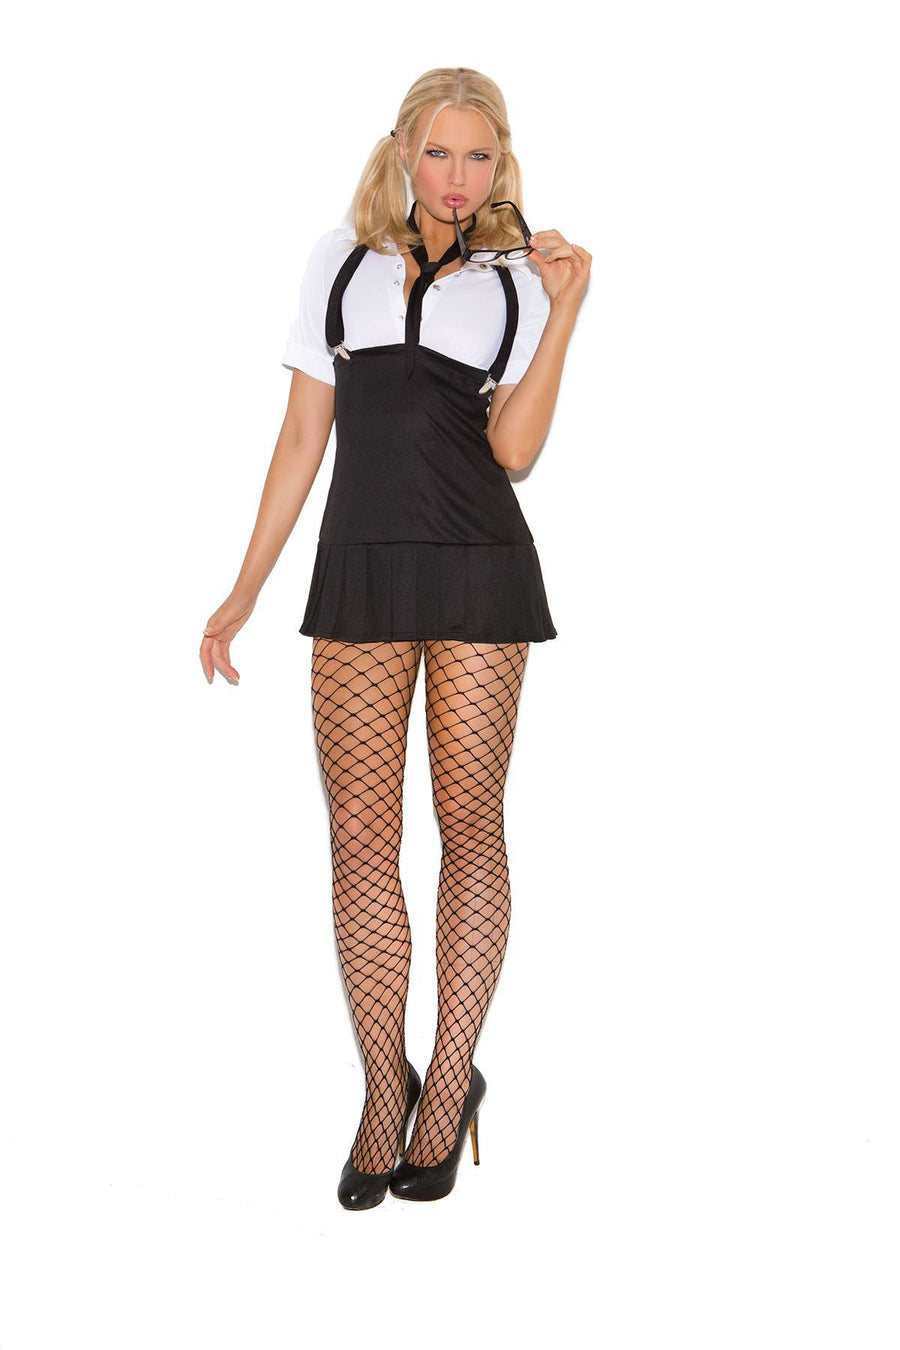 Business School Girl - 2 pc costume includes short sleeve mini dress with detachable suspenders and neck tie Black/White